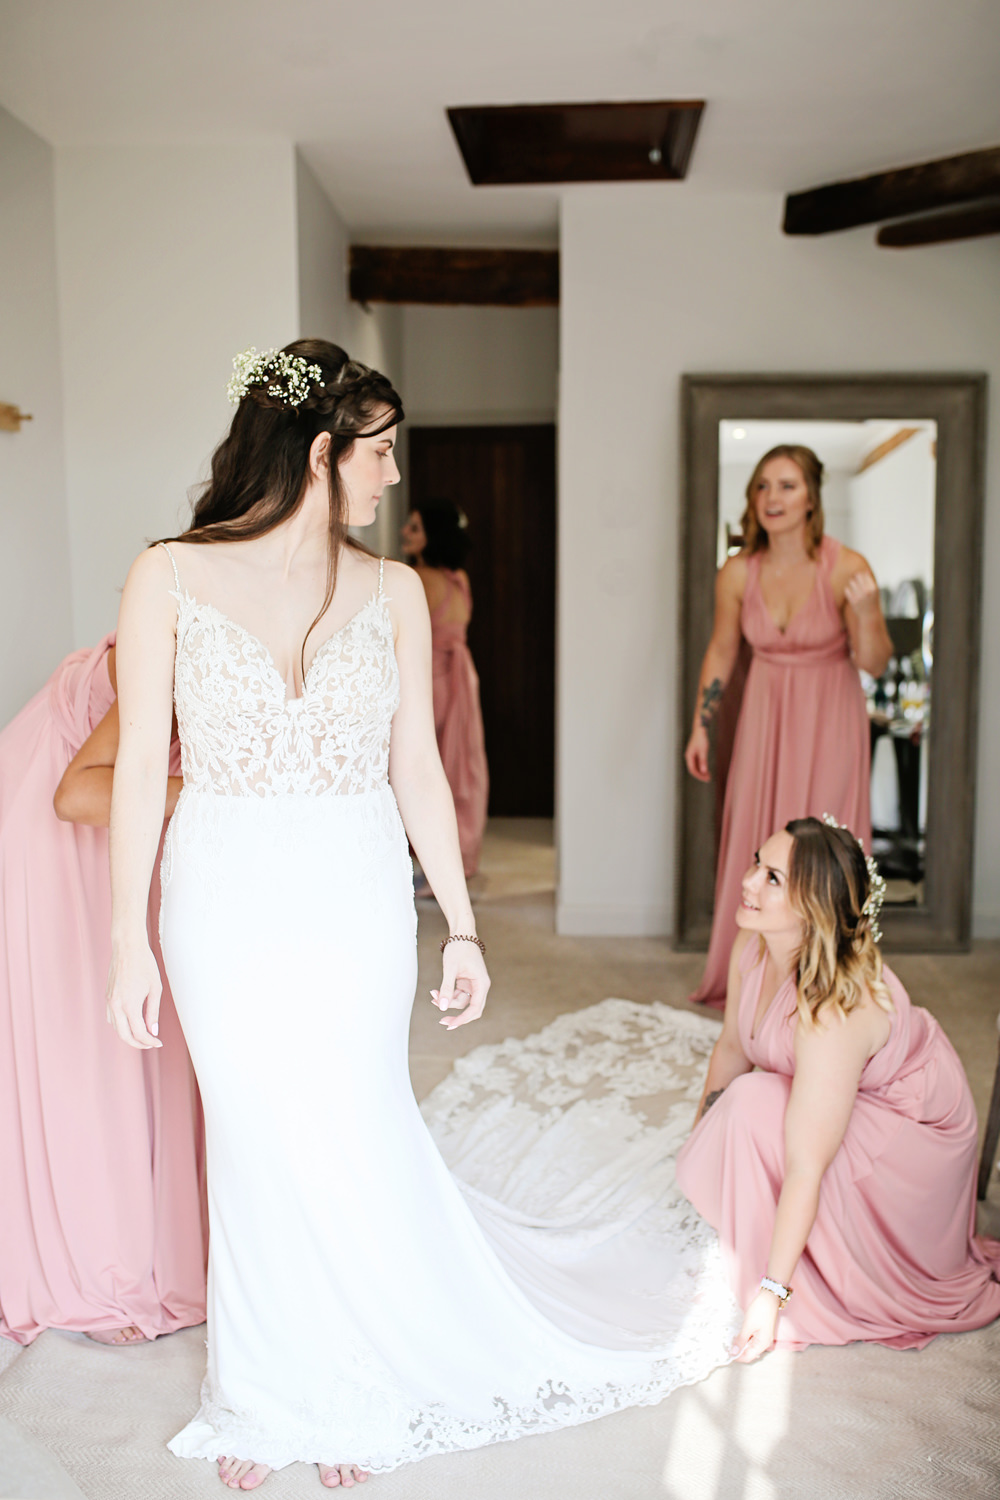 Bride Bridal Dress Gown Fit Flare Fishtail Train Straps Lace Enzoani Milling Barn Wedding Victoria Mitchell Photography